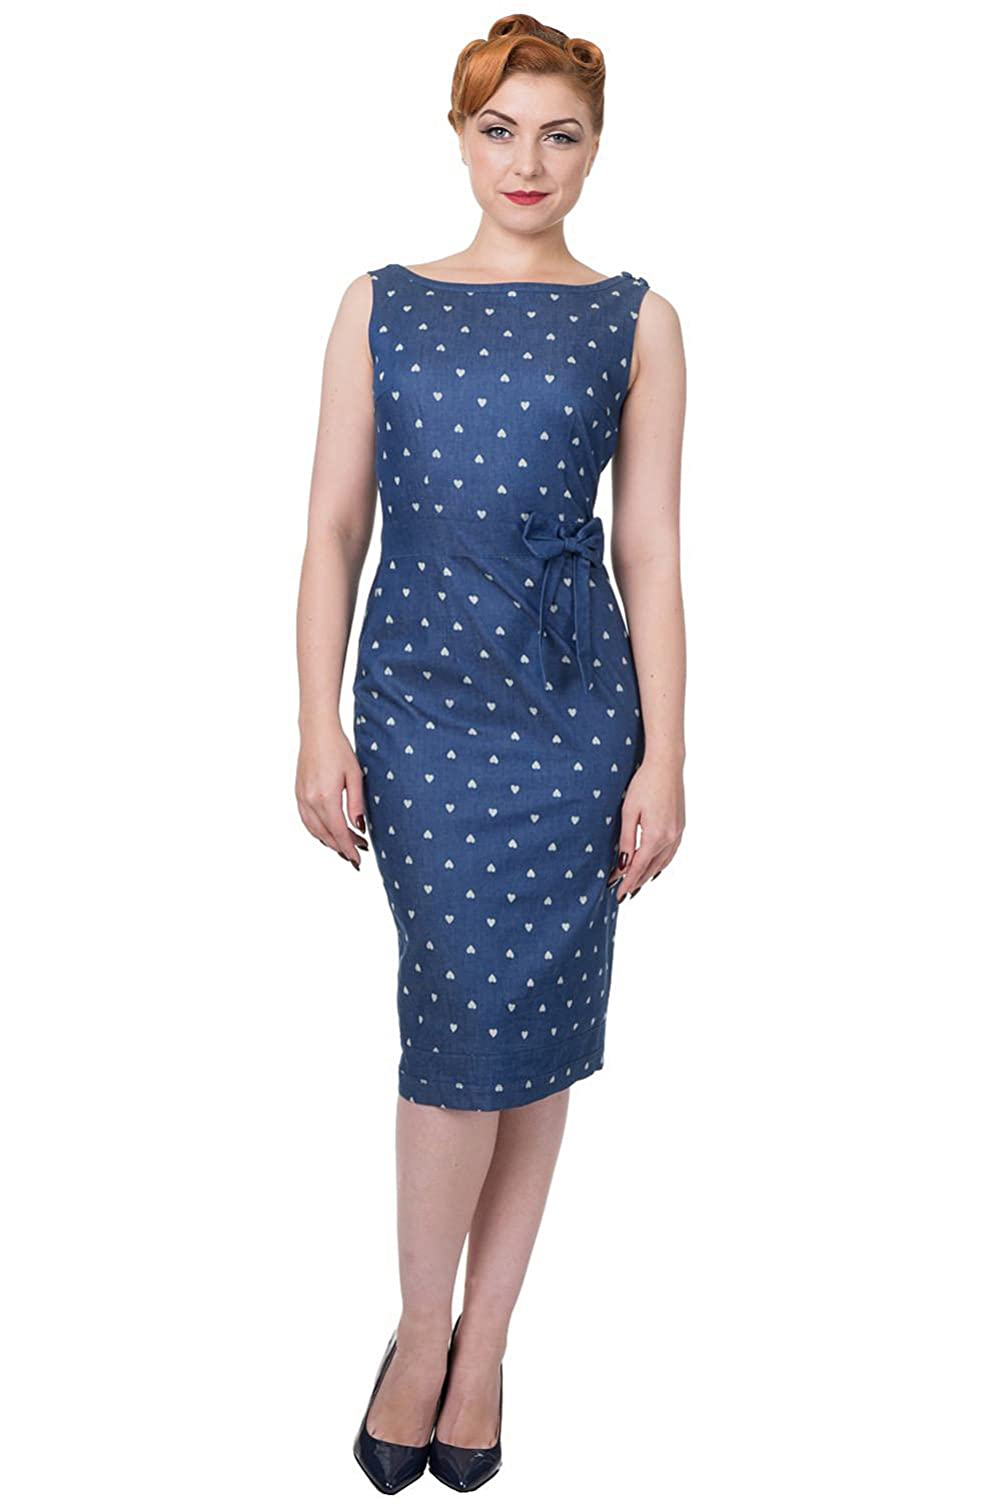 What Did Women Wear in the 1950s? Banned Apparel Sweet Treat Pencil Denim Dress $55.48 AT vintagedancer.com